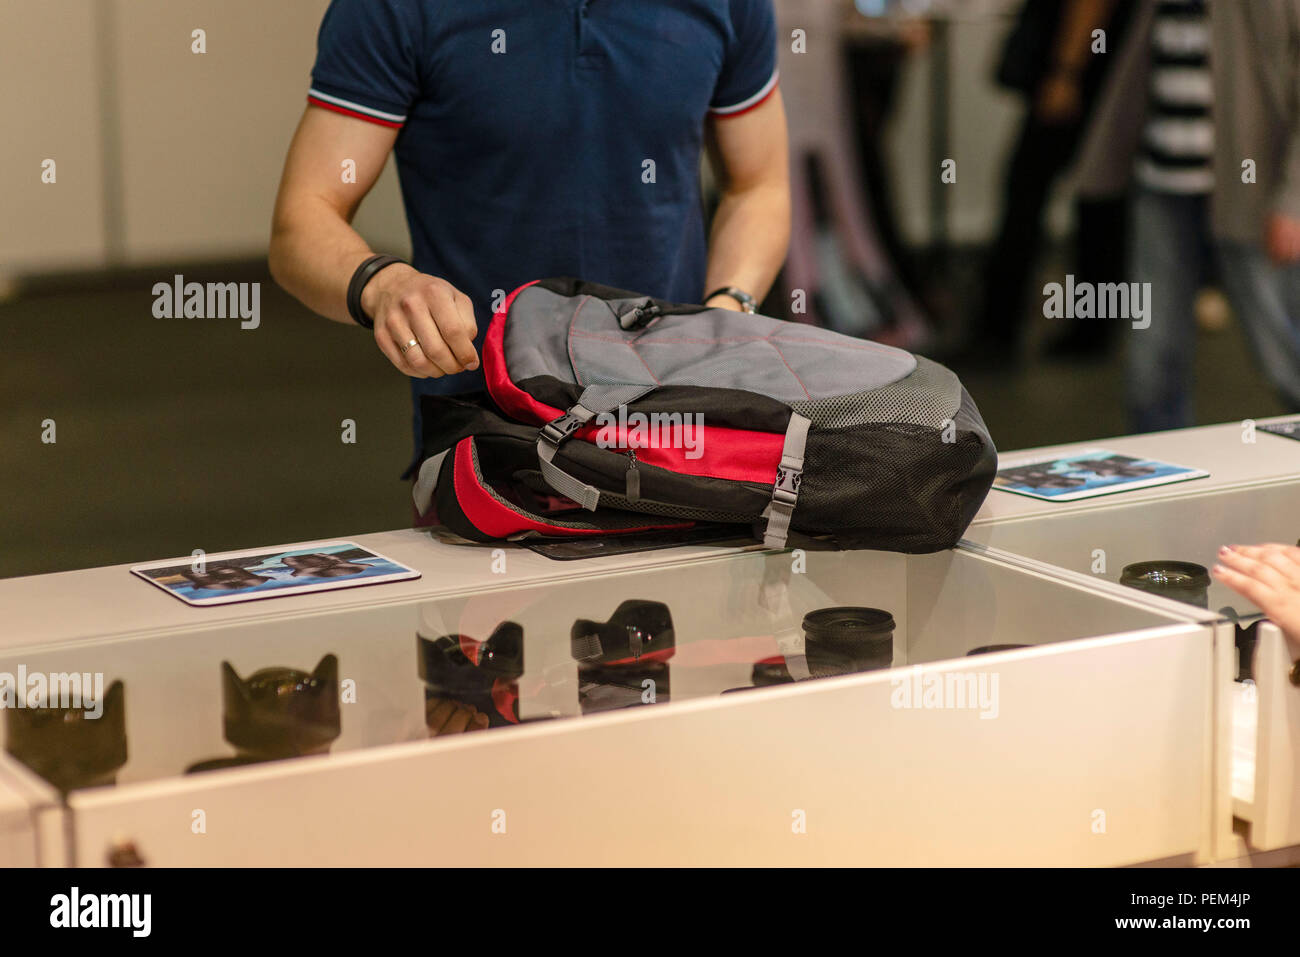 RIGA. LATVIA.  - MAY 11, 2018: The man puts the equipment bought in the photo store in the backpack. - Stock Image